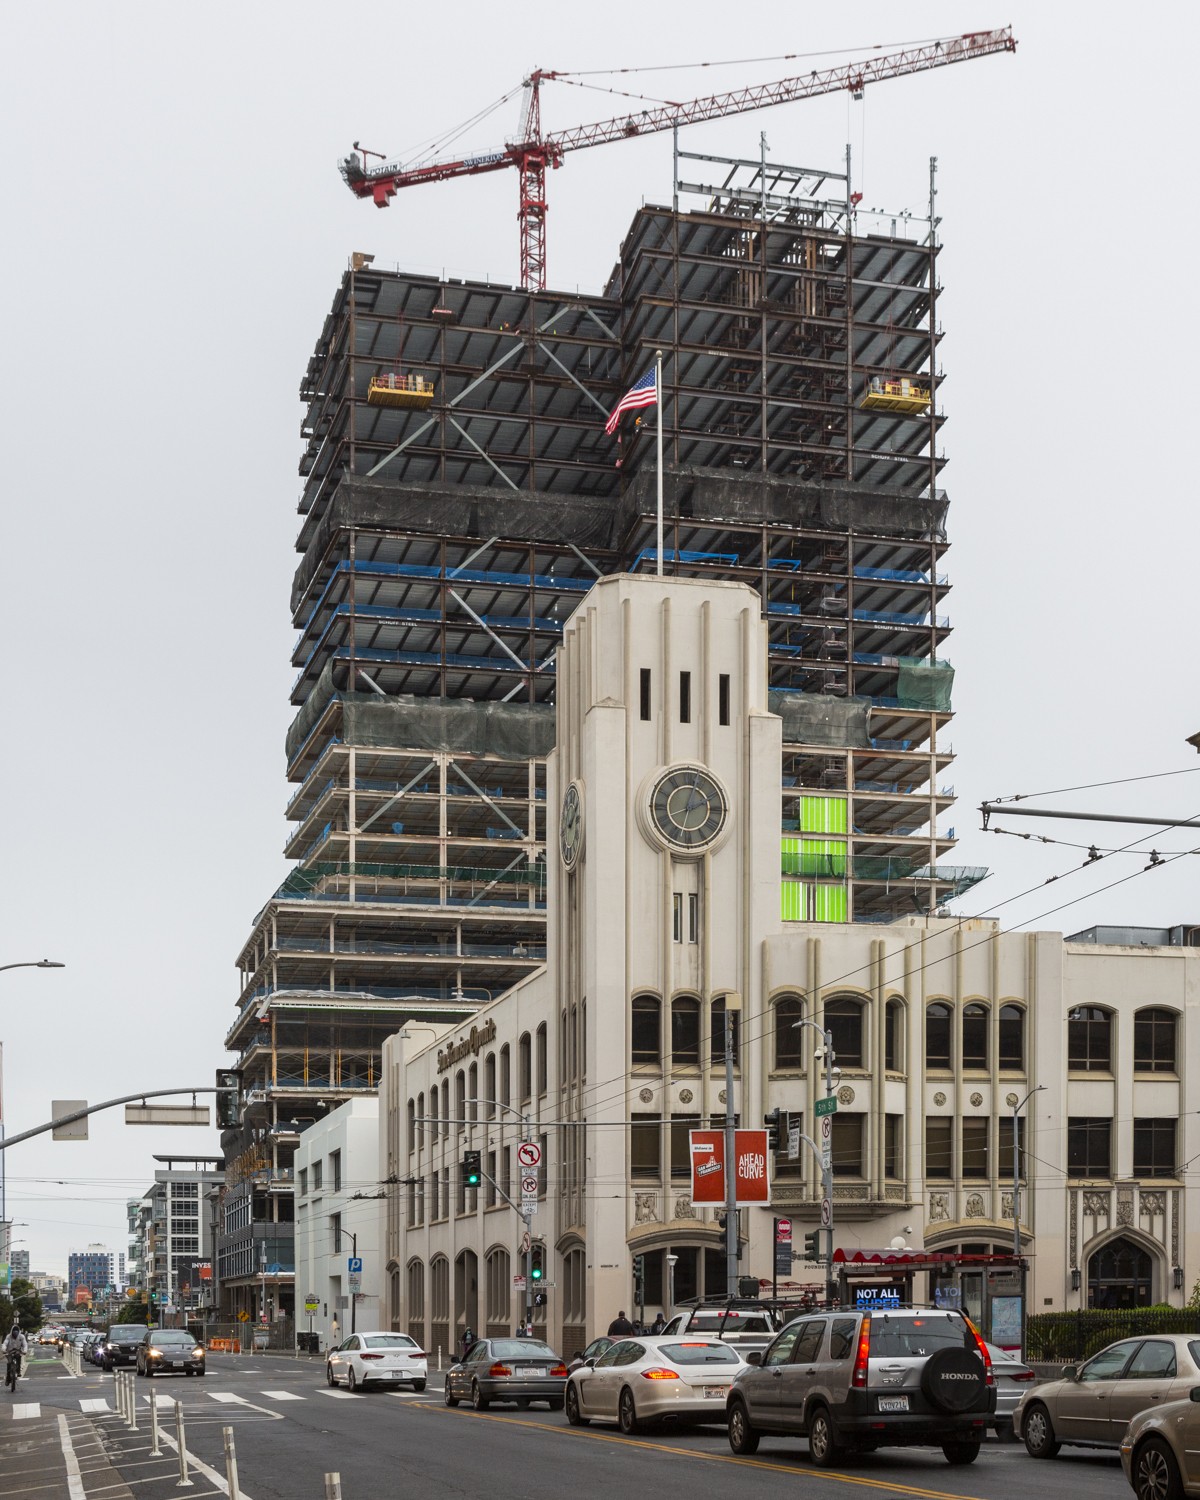 415 Natoma Street beside the SF Chronicle building, image by author